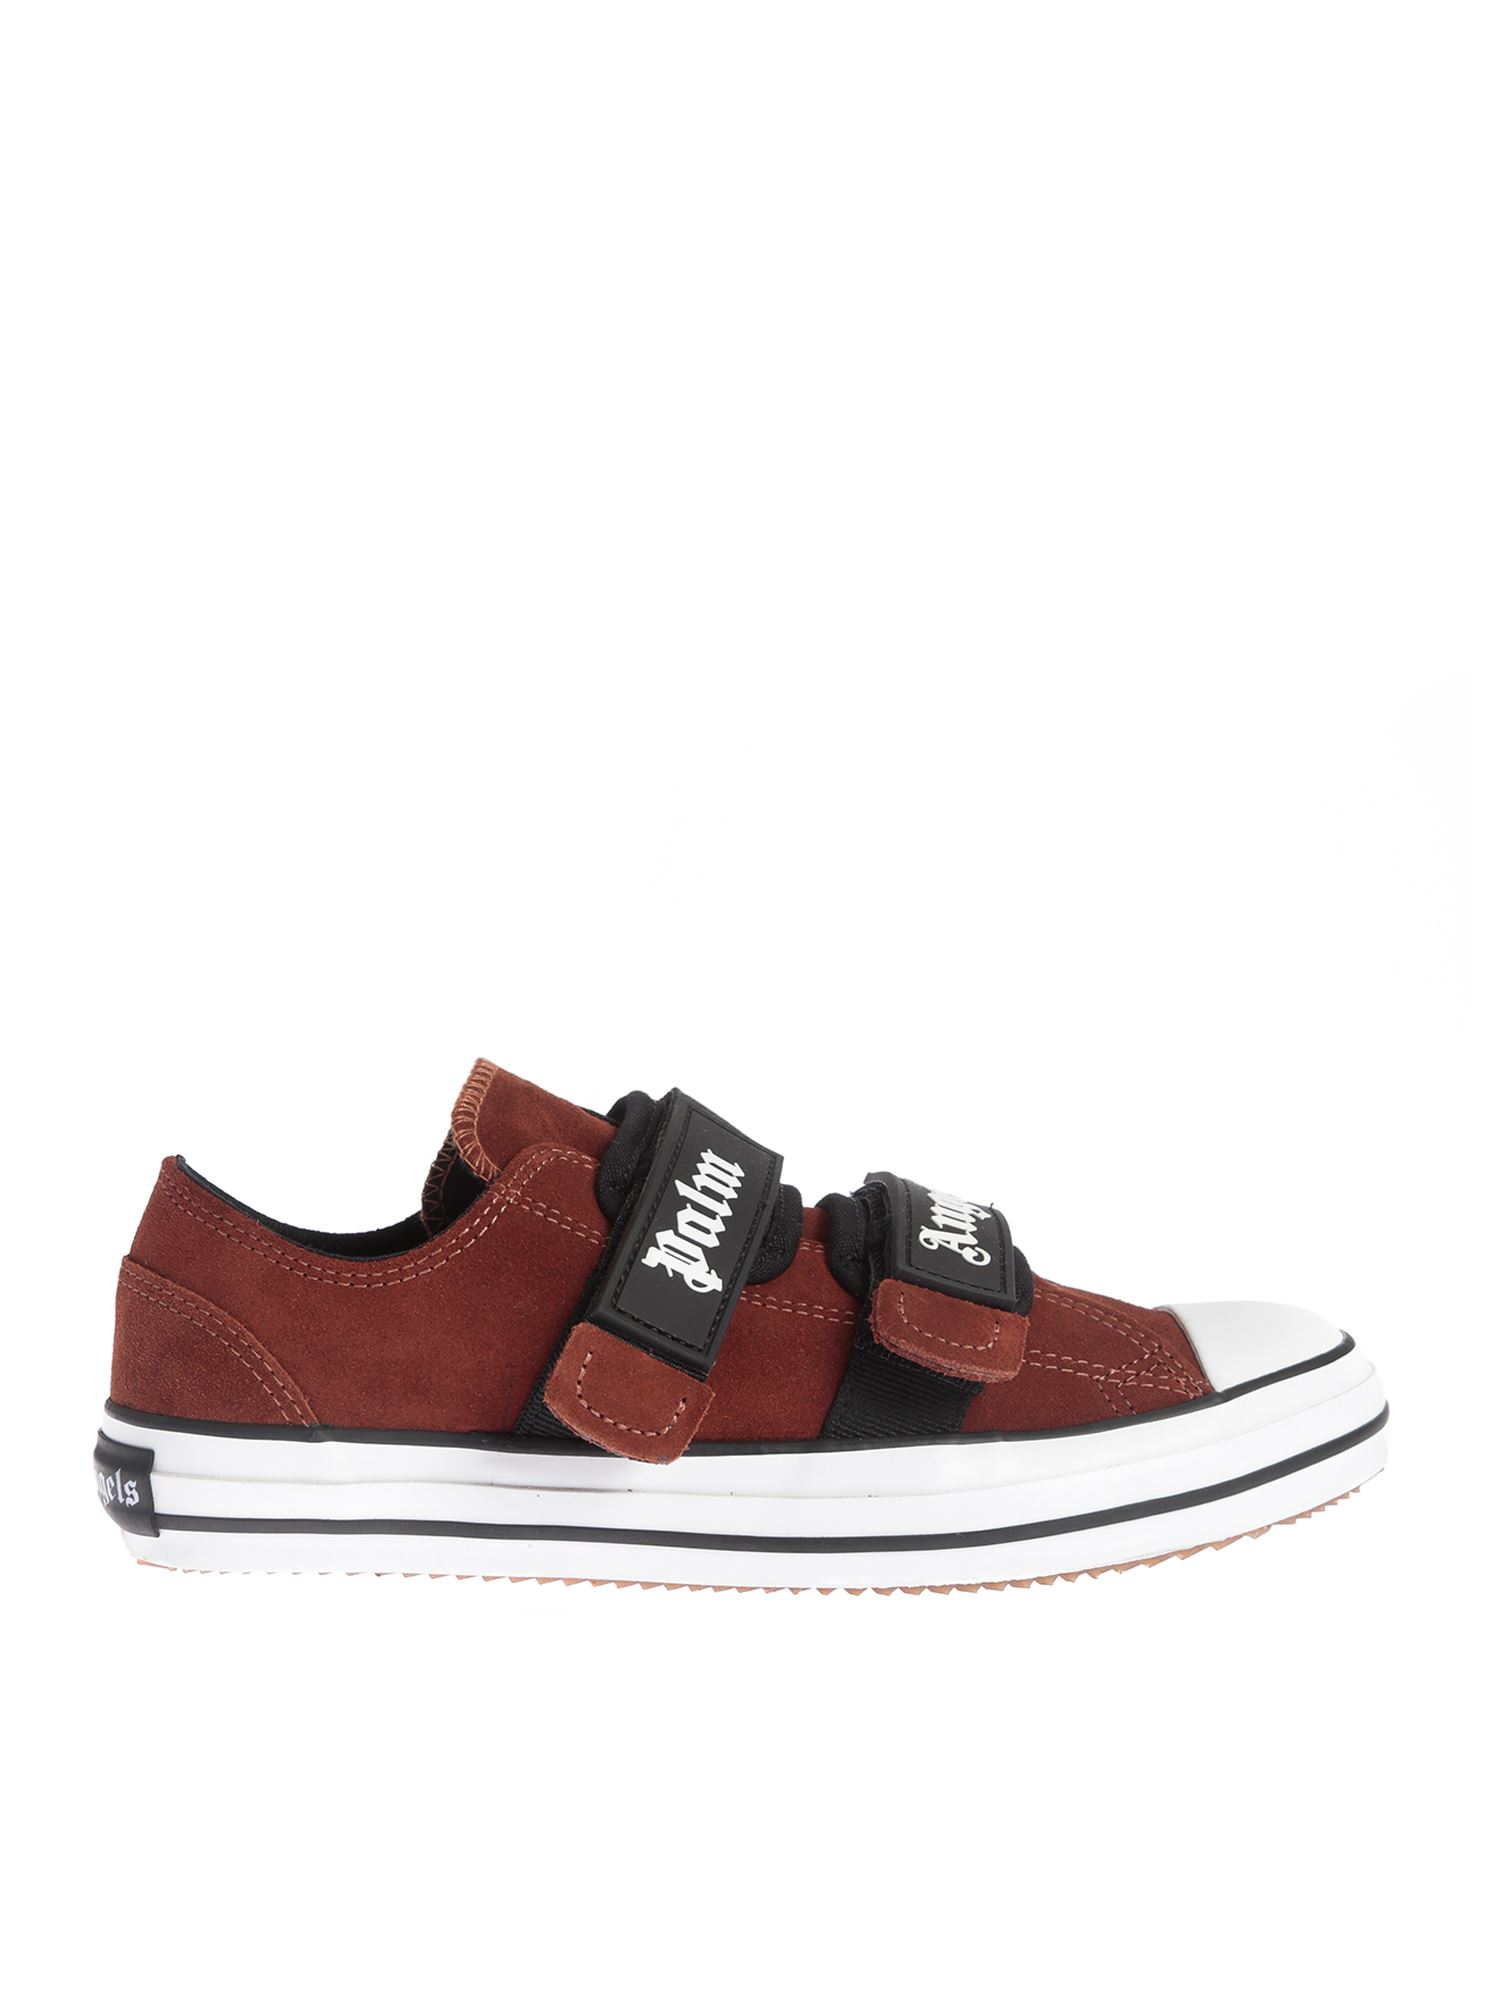 Palm Angels VELCRO VULCANIZED SNEAKERS IN BROWN